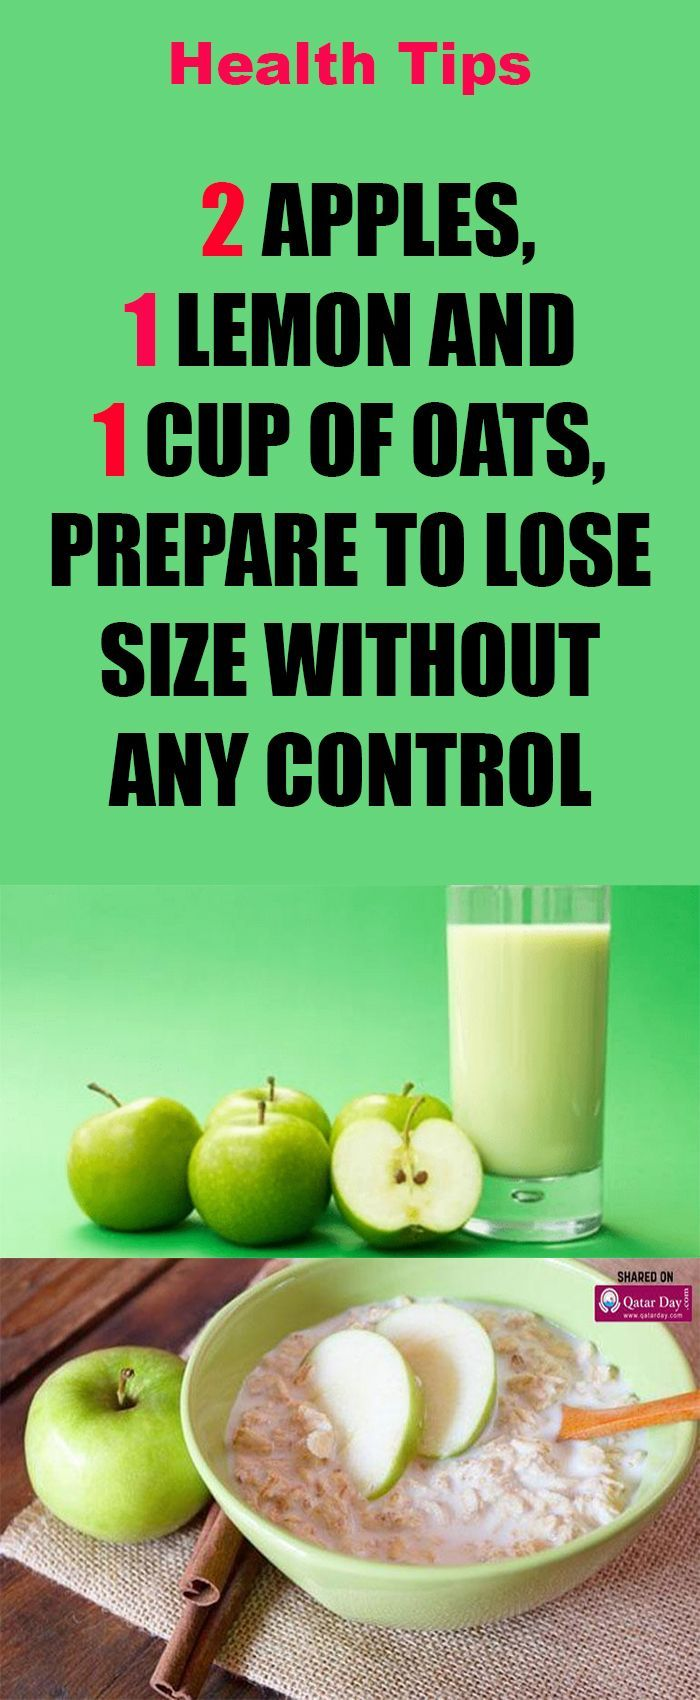 2 Apples, 1 Lemon And 1 Cup Of Oats, Prepare To Lose Size